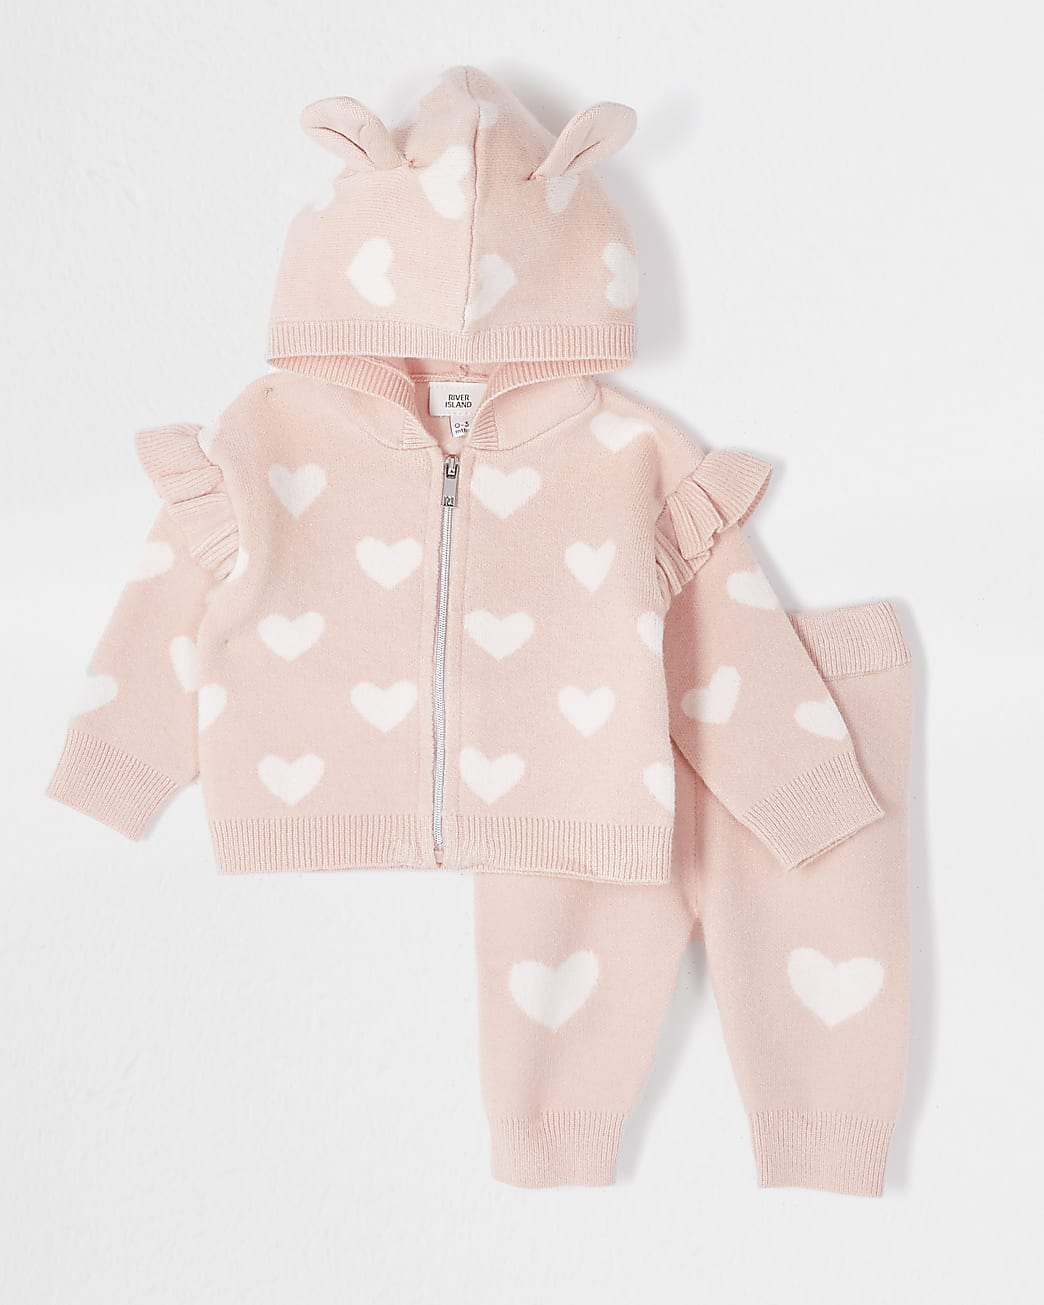 Baby pink heart knit cardigan outfit